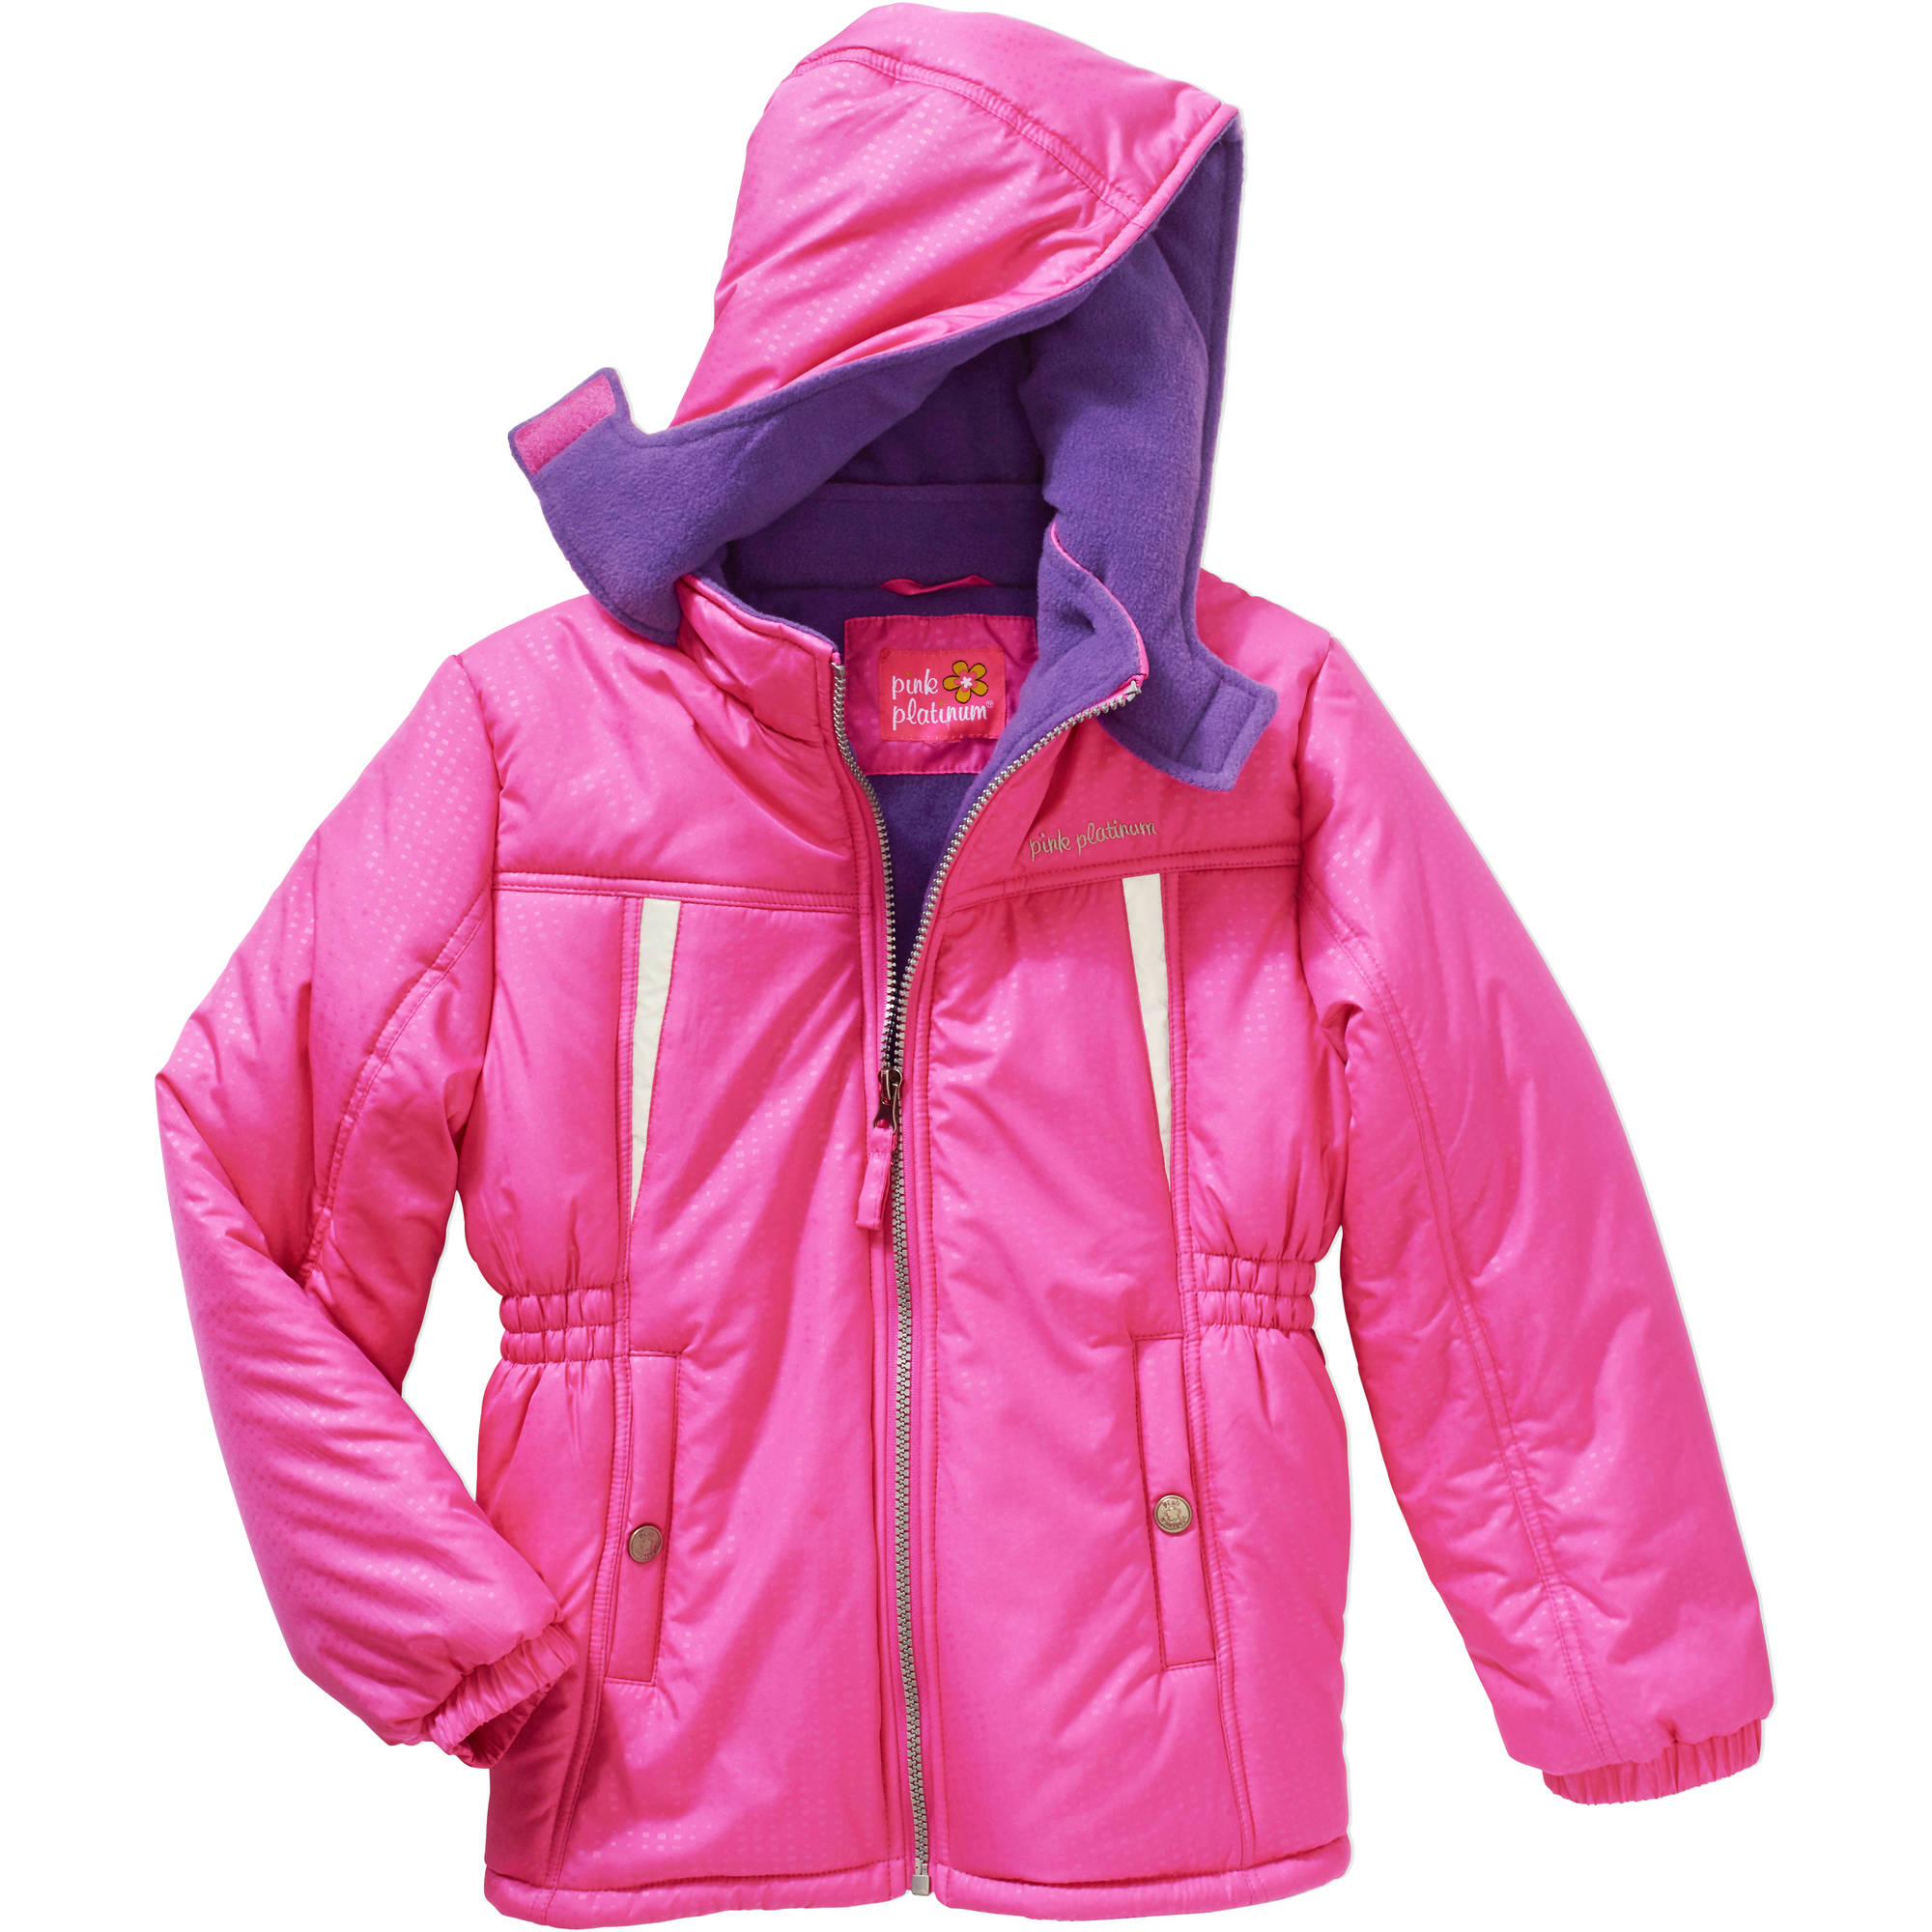 Pink Platinum Girls' Stamp Print Active Jacket with Pockets